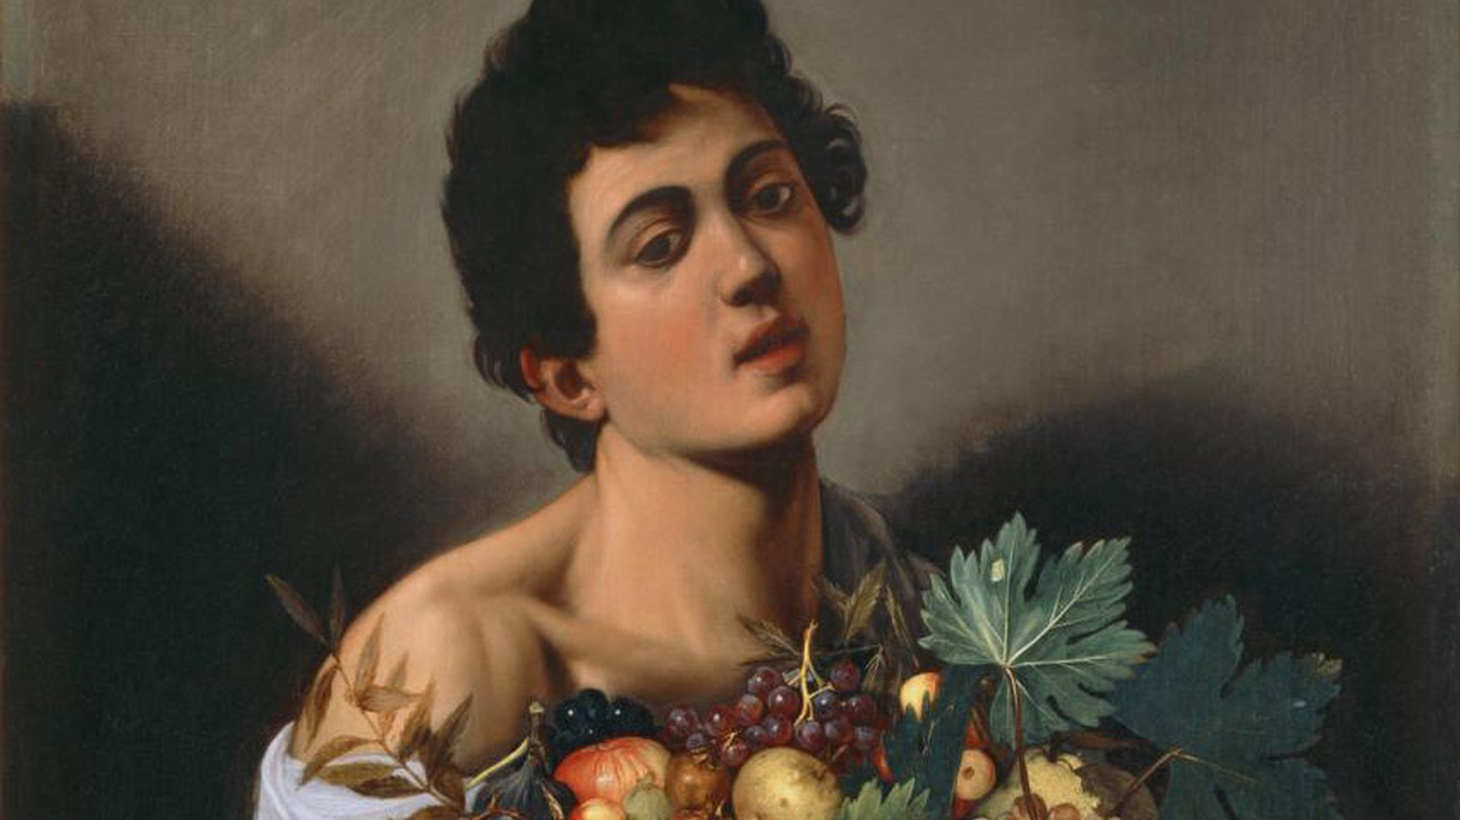 Edward Goldman talks about the extremely rare loan of three Caravaggio paintings from Galleria Borghese in Rome to The Getty.